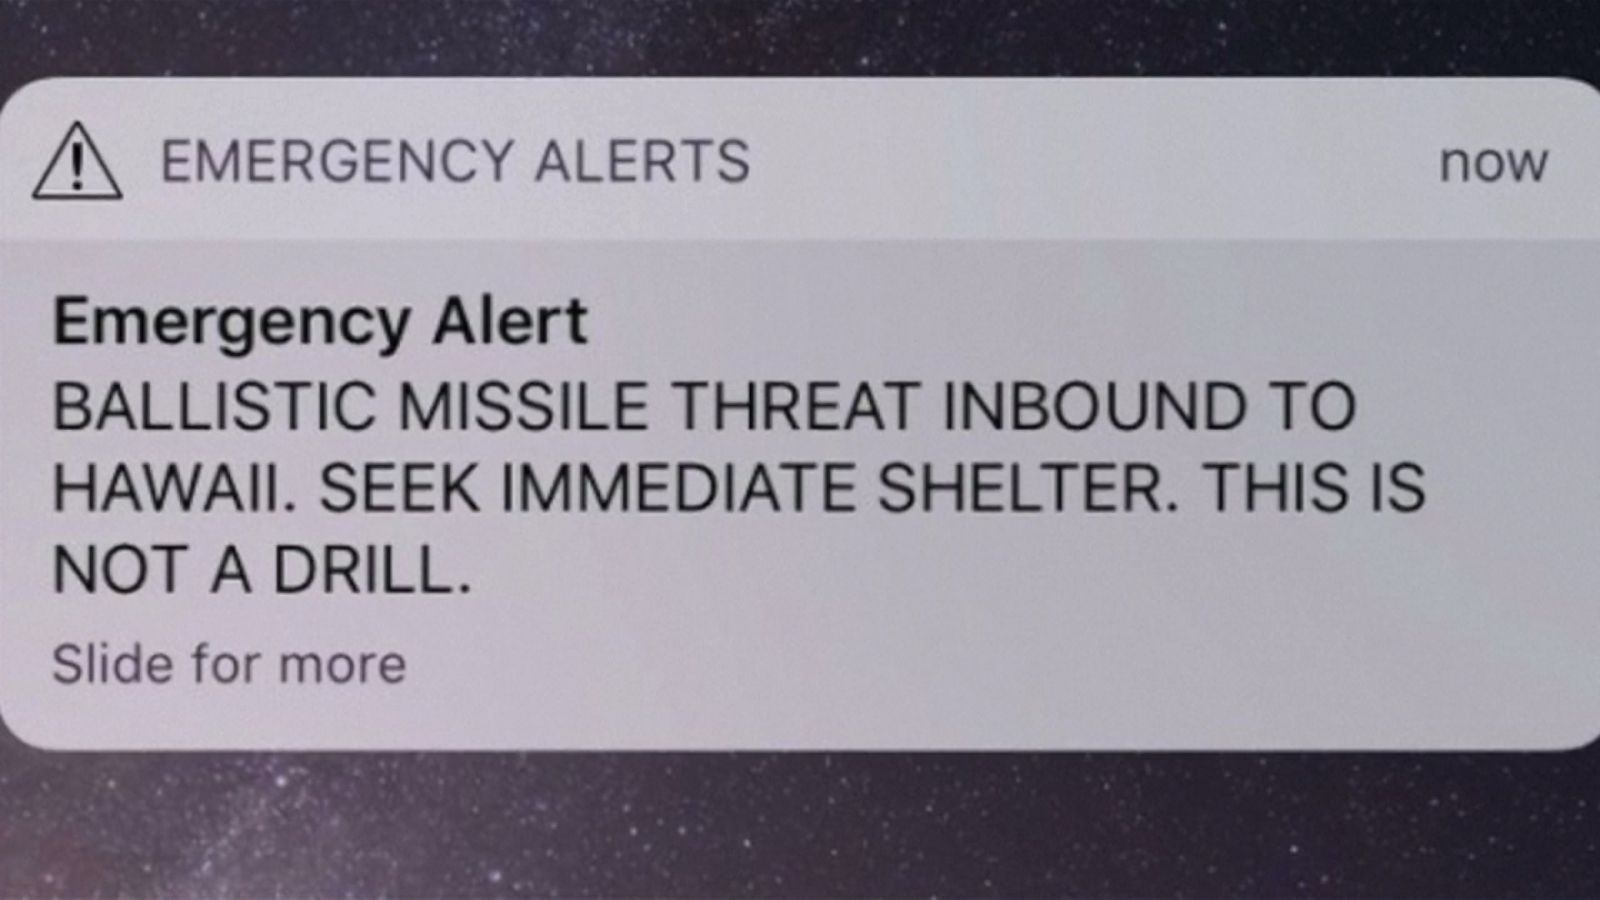 Hawaii residents run for shelter after false emergency missile alert sparks panic